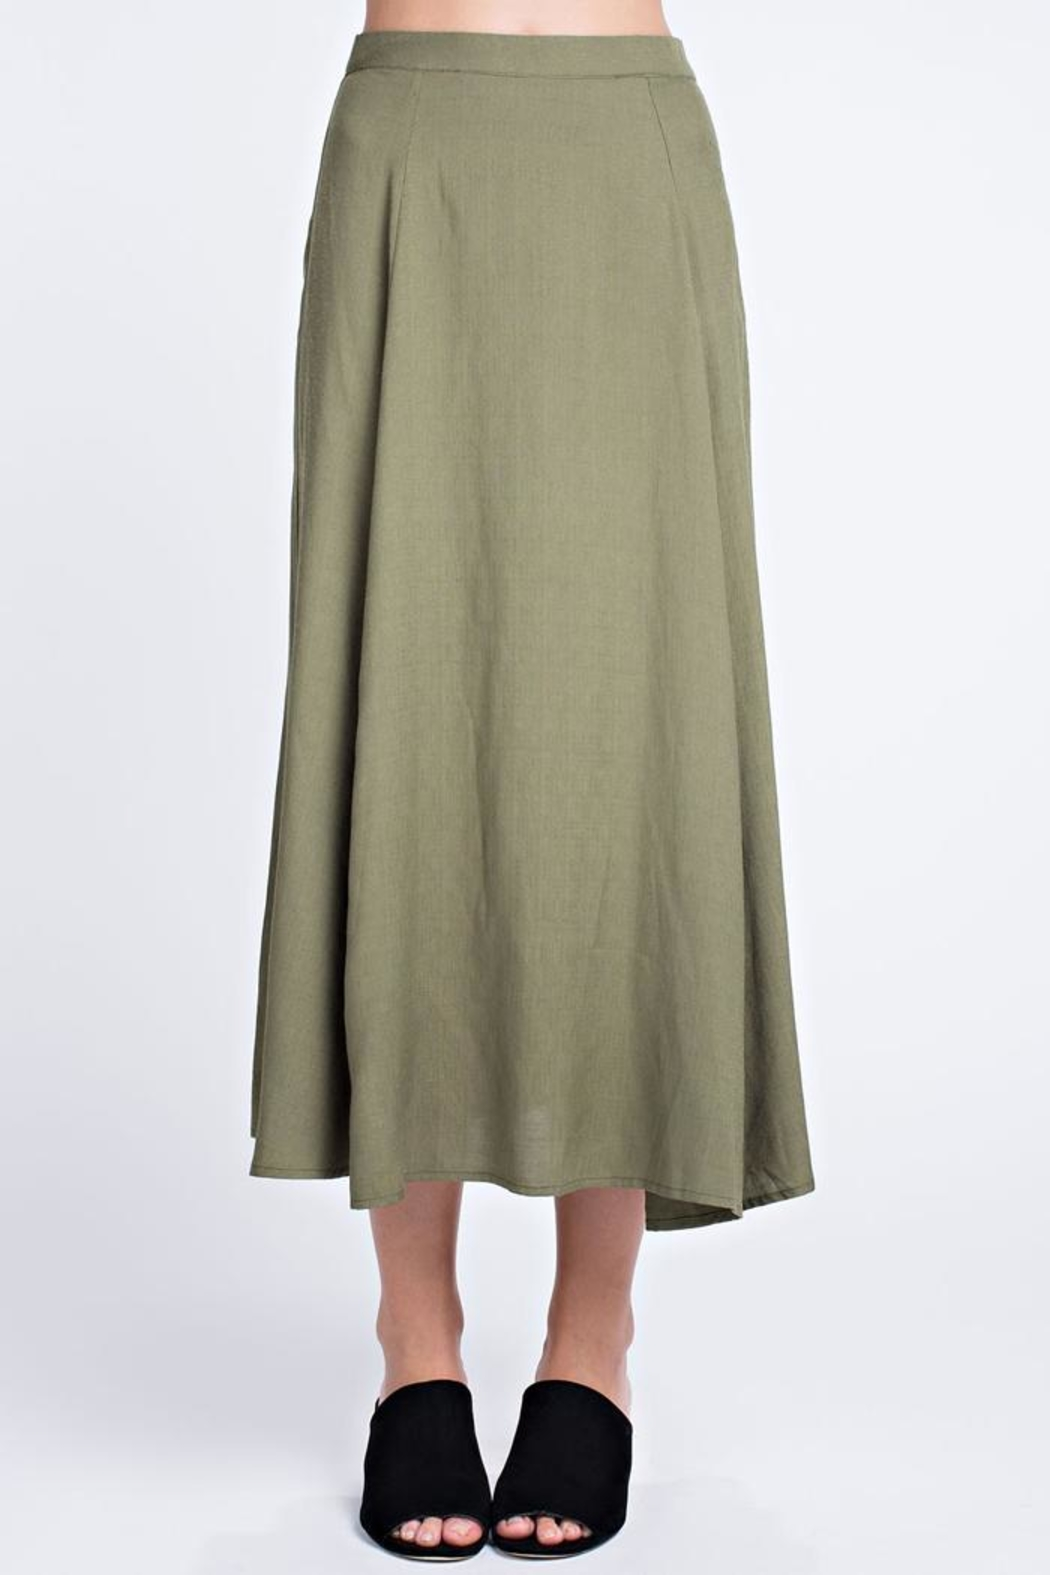 Honey Punch The Getaway Skirt - Front Cropped Image